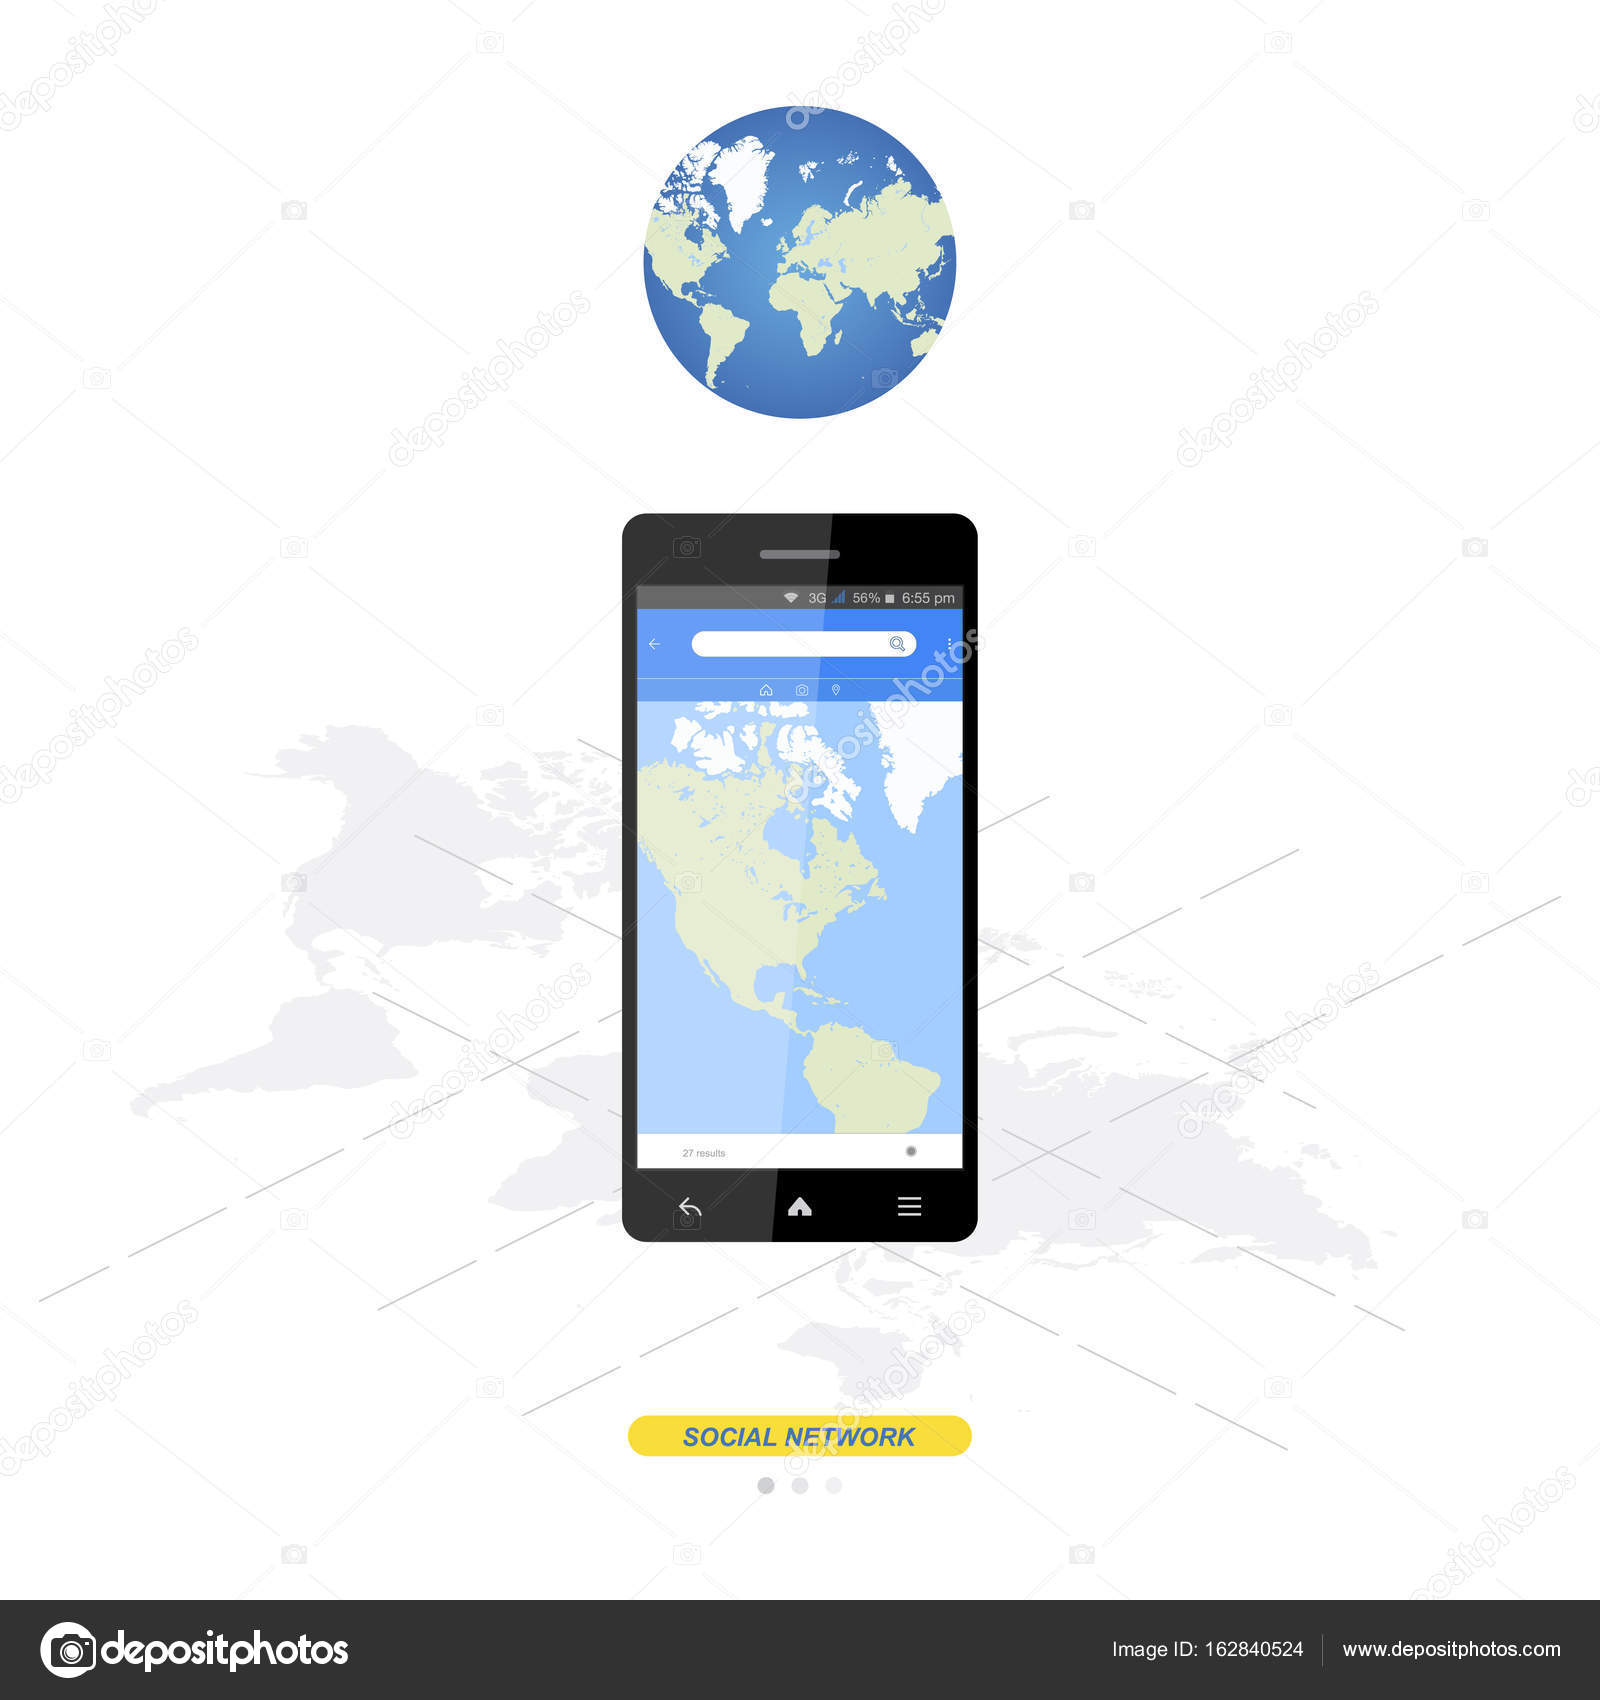 Mobile application with world map for navigation in smartphone mobile application with world map for navigation in smartphone stock vector gumiabroncs Choice Image